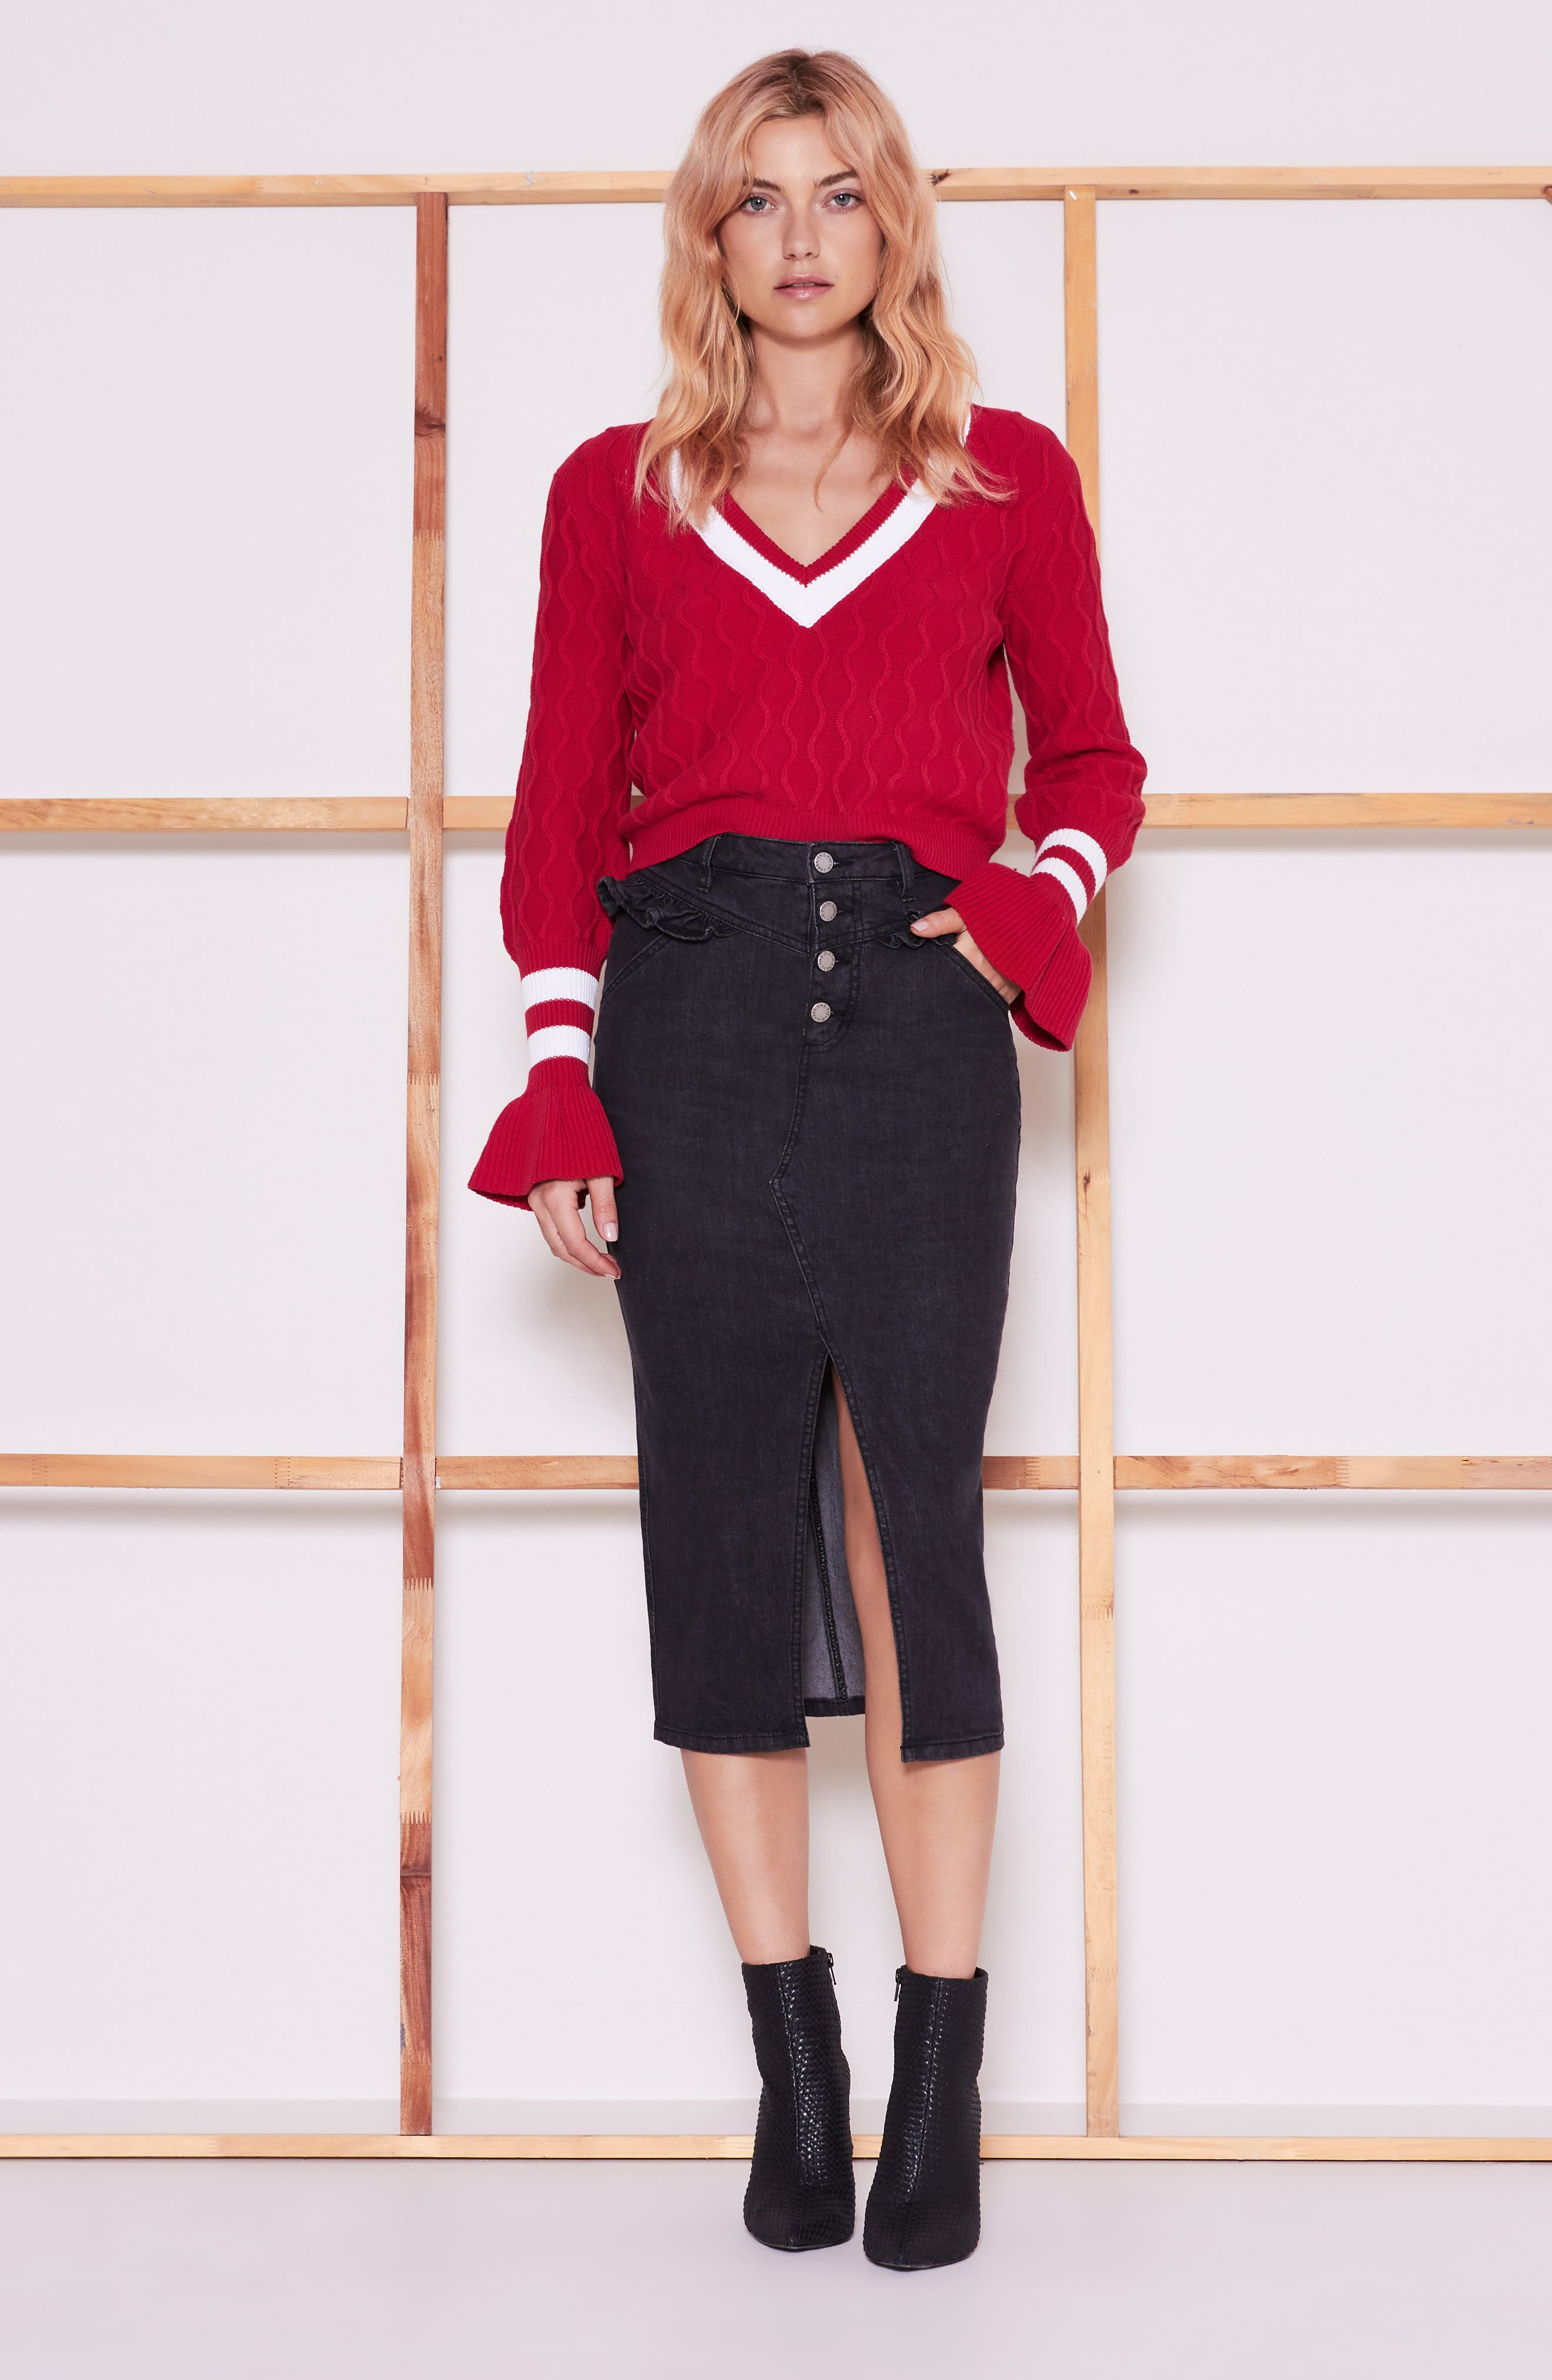 Graduate Bell Sleeve Sweater,                             Alternate thumbnail 7, color,                             BERRY/ WHITE